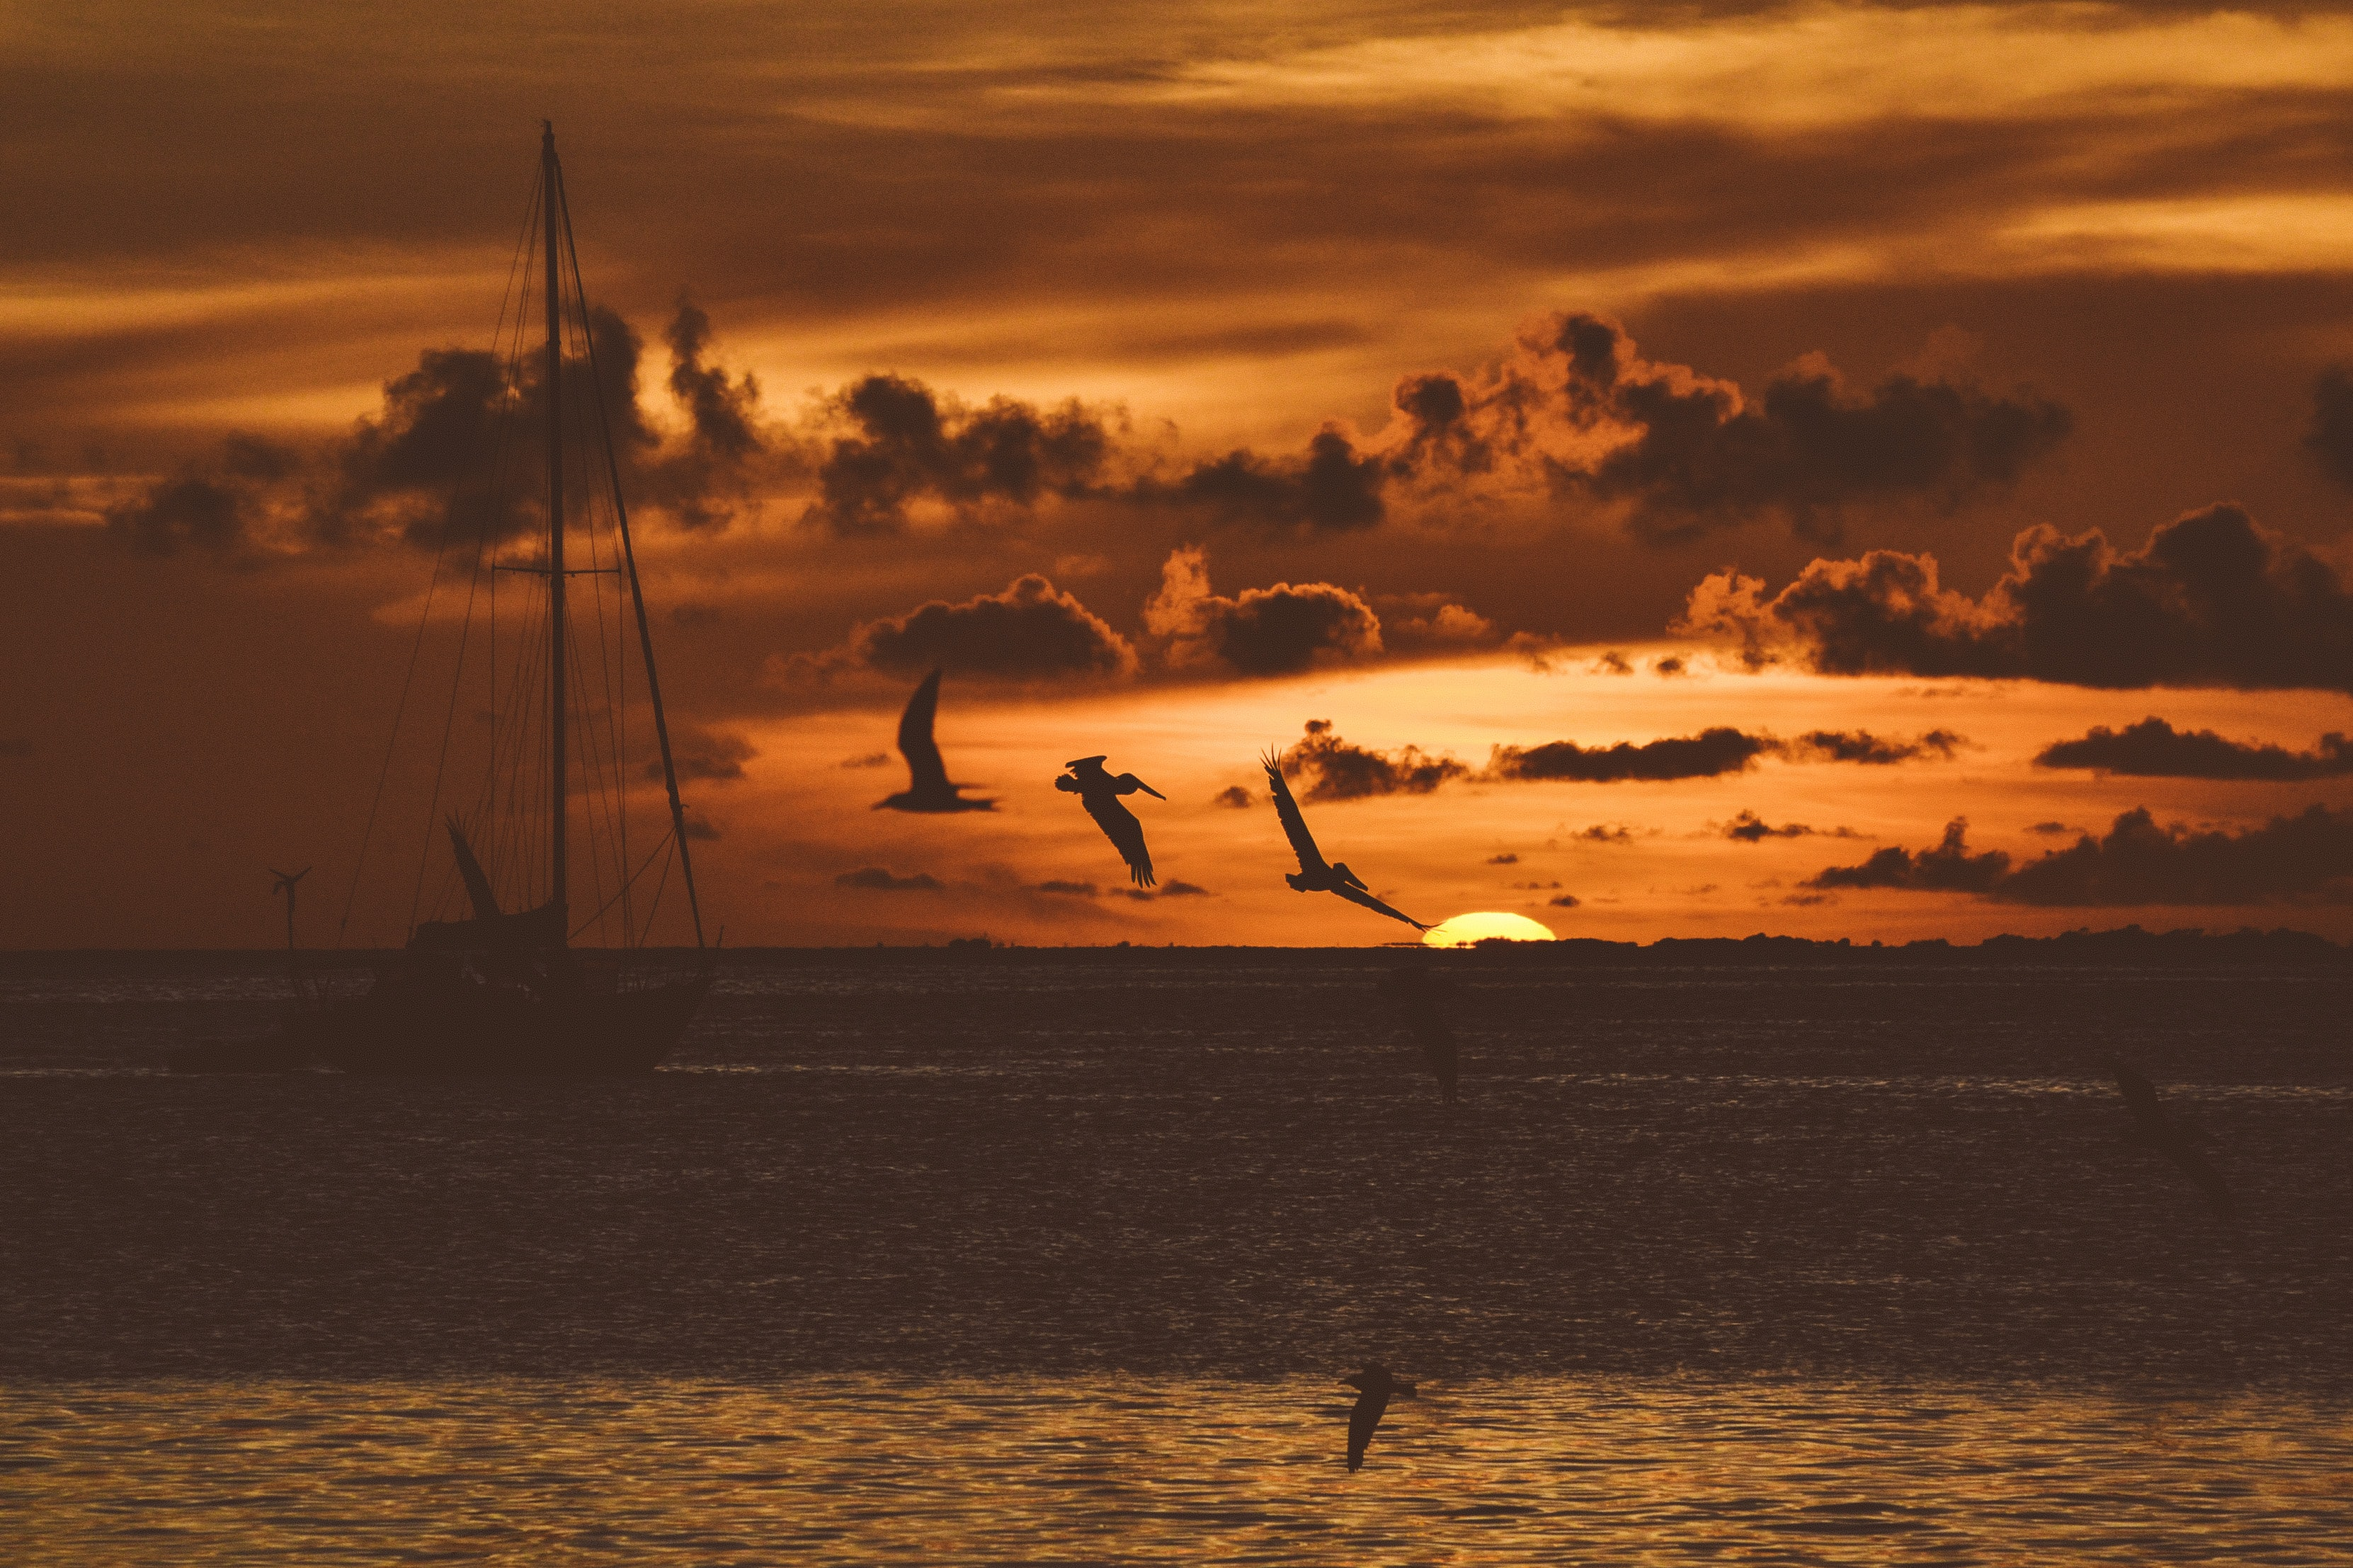 Silhouette seagull flying over water and a single silhouette boat floating in the showdown waters during sunrise-or-sunset and the sky is orange